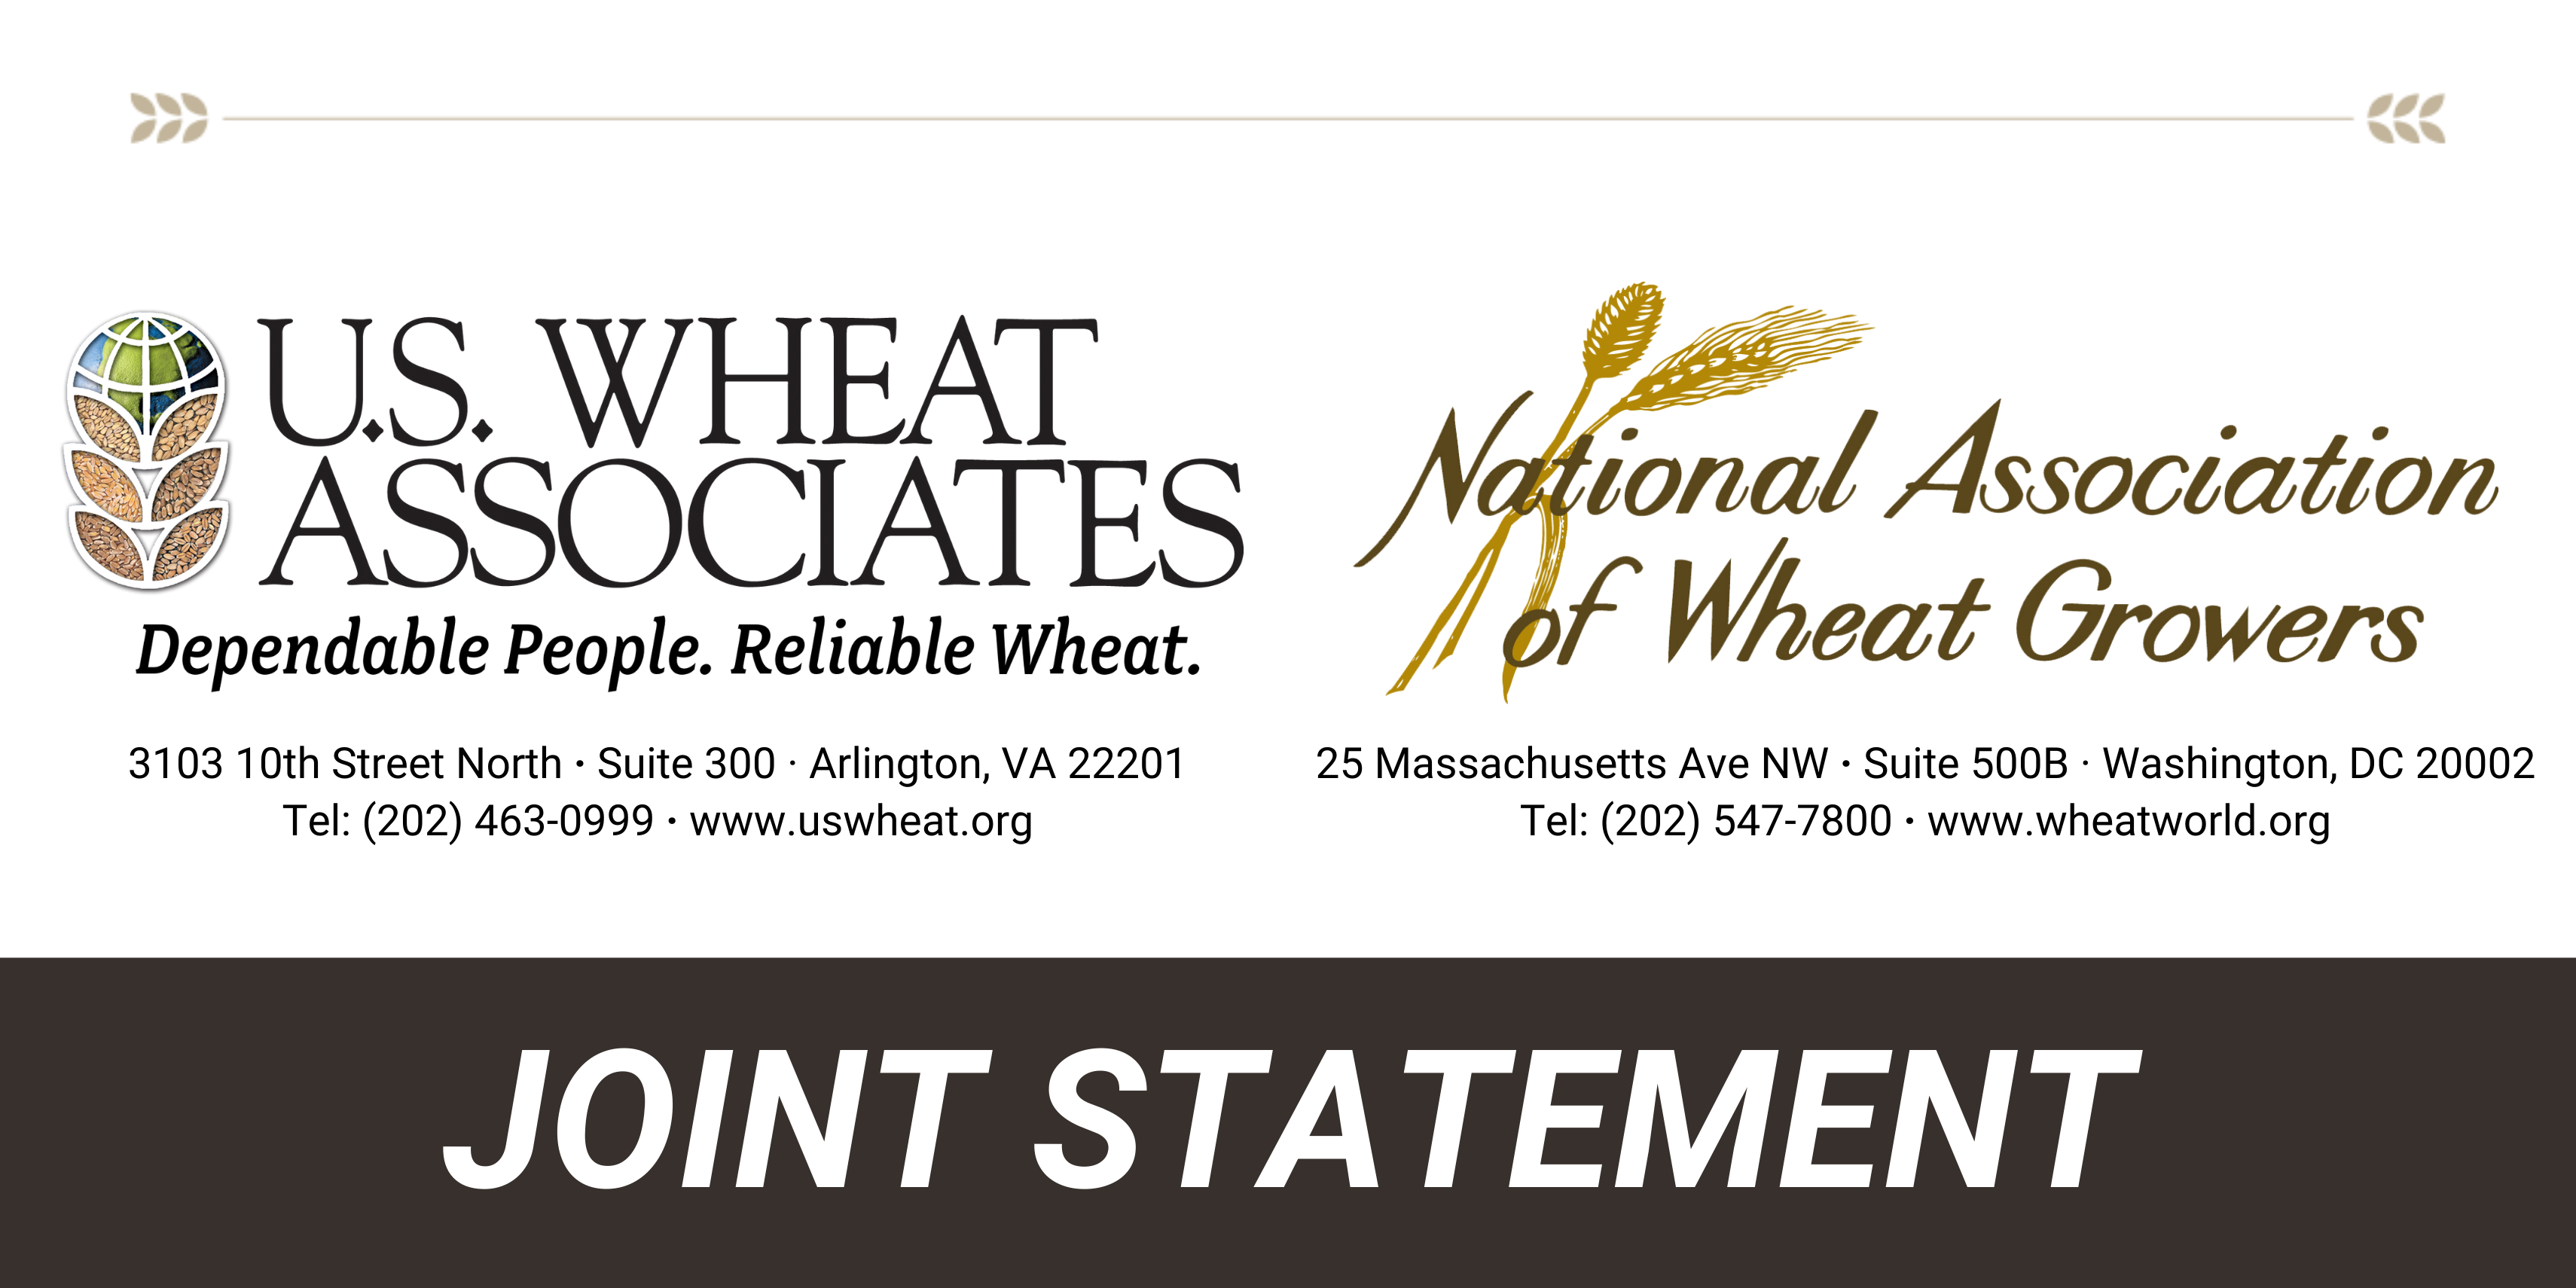 Joint Statement from U.S. Wheat Associates and the National Association of Wheat Growers